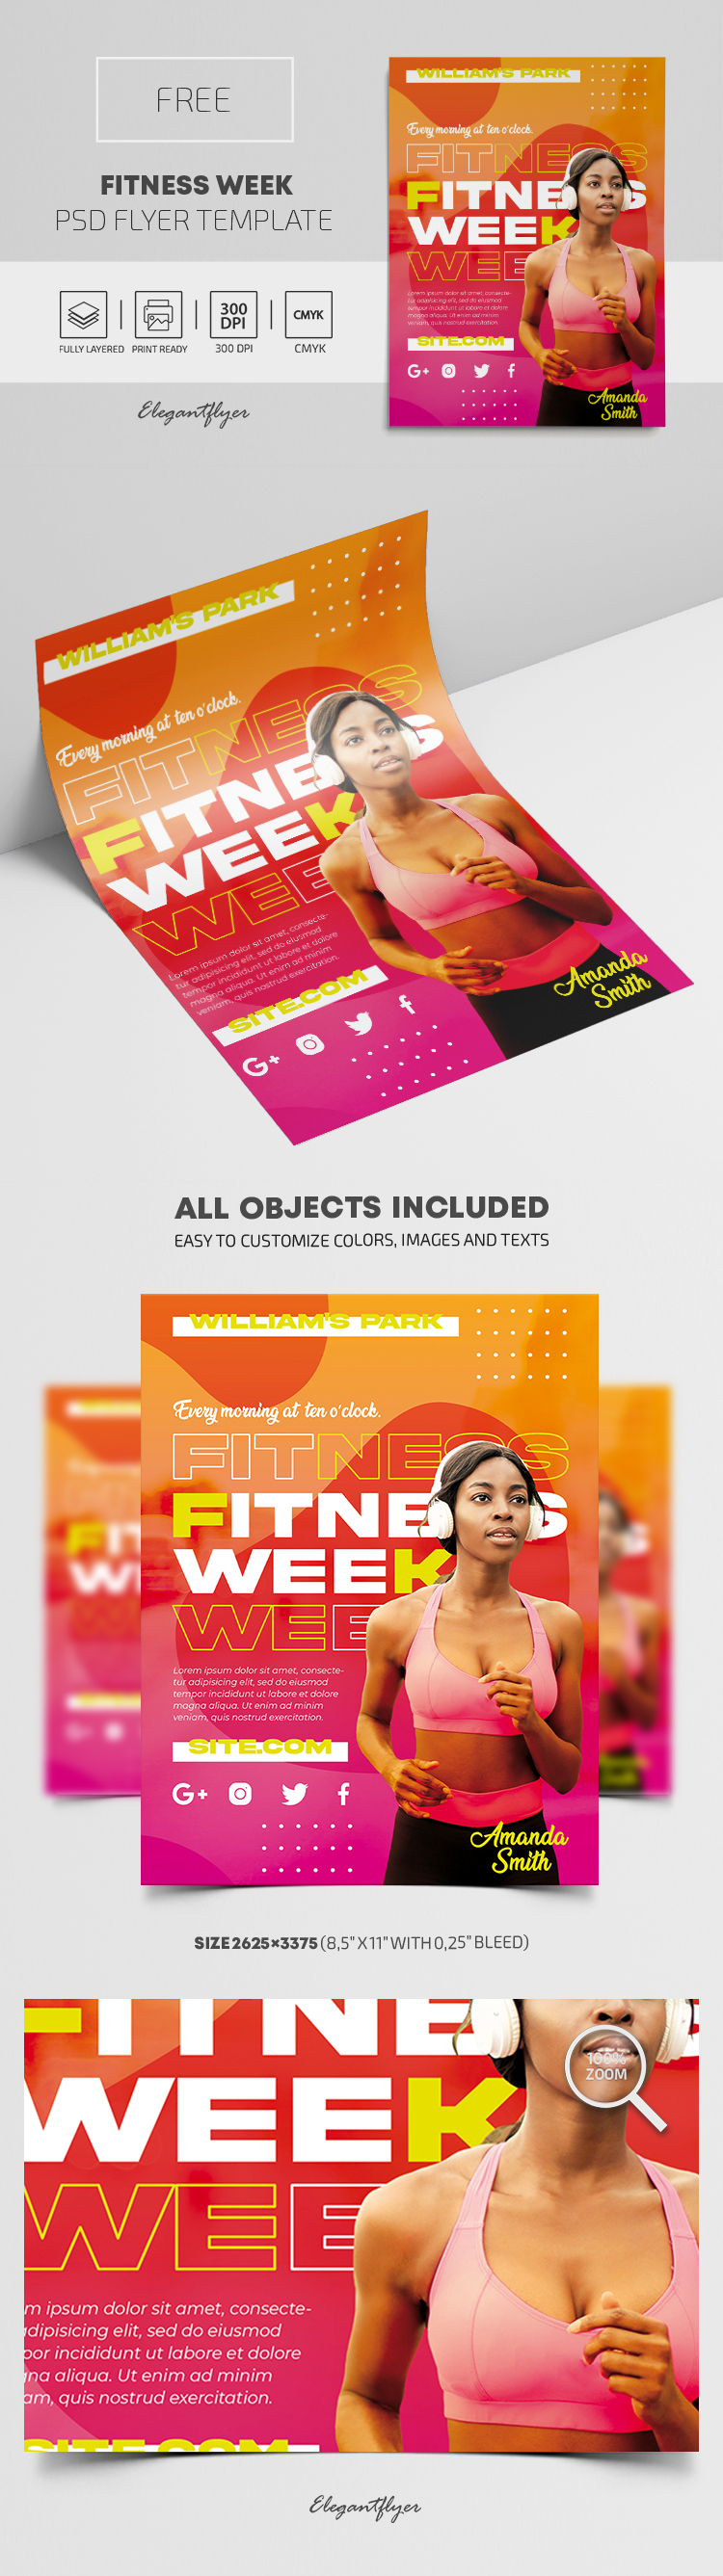 Fitness Week – Free PSD Flyer Template